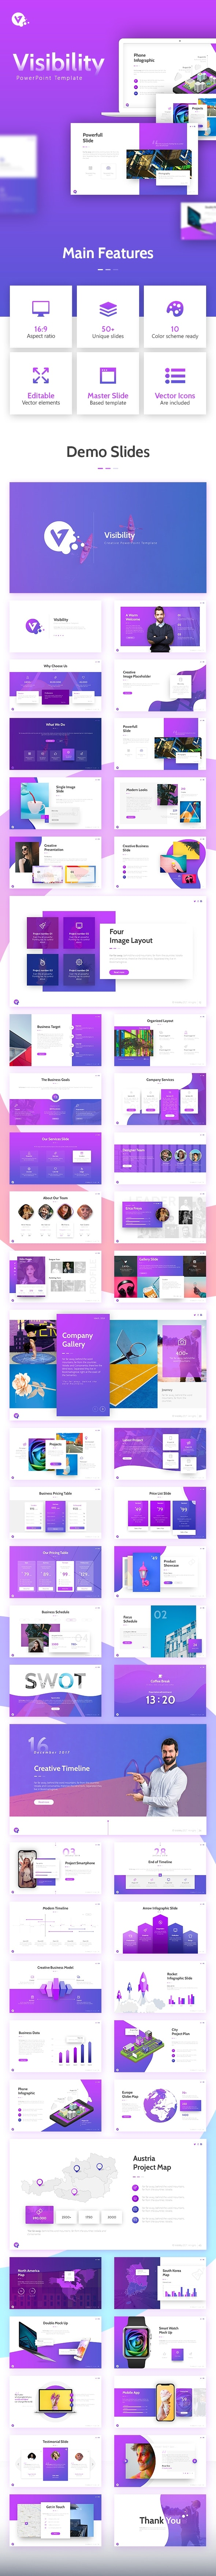 Visibility - Creative Business Powerpoint Template - Business PowerPoint Templates